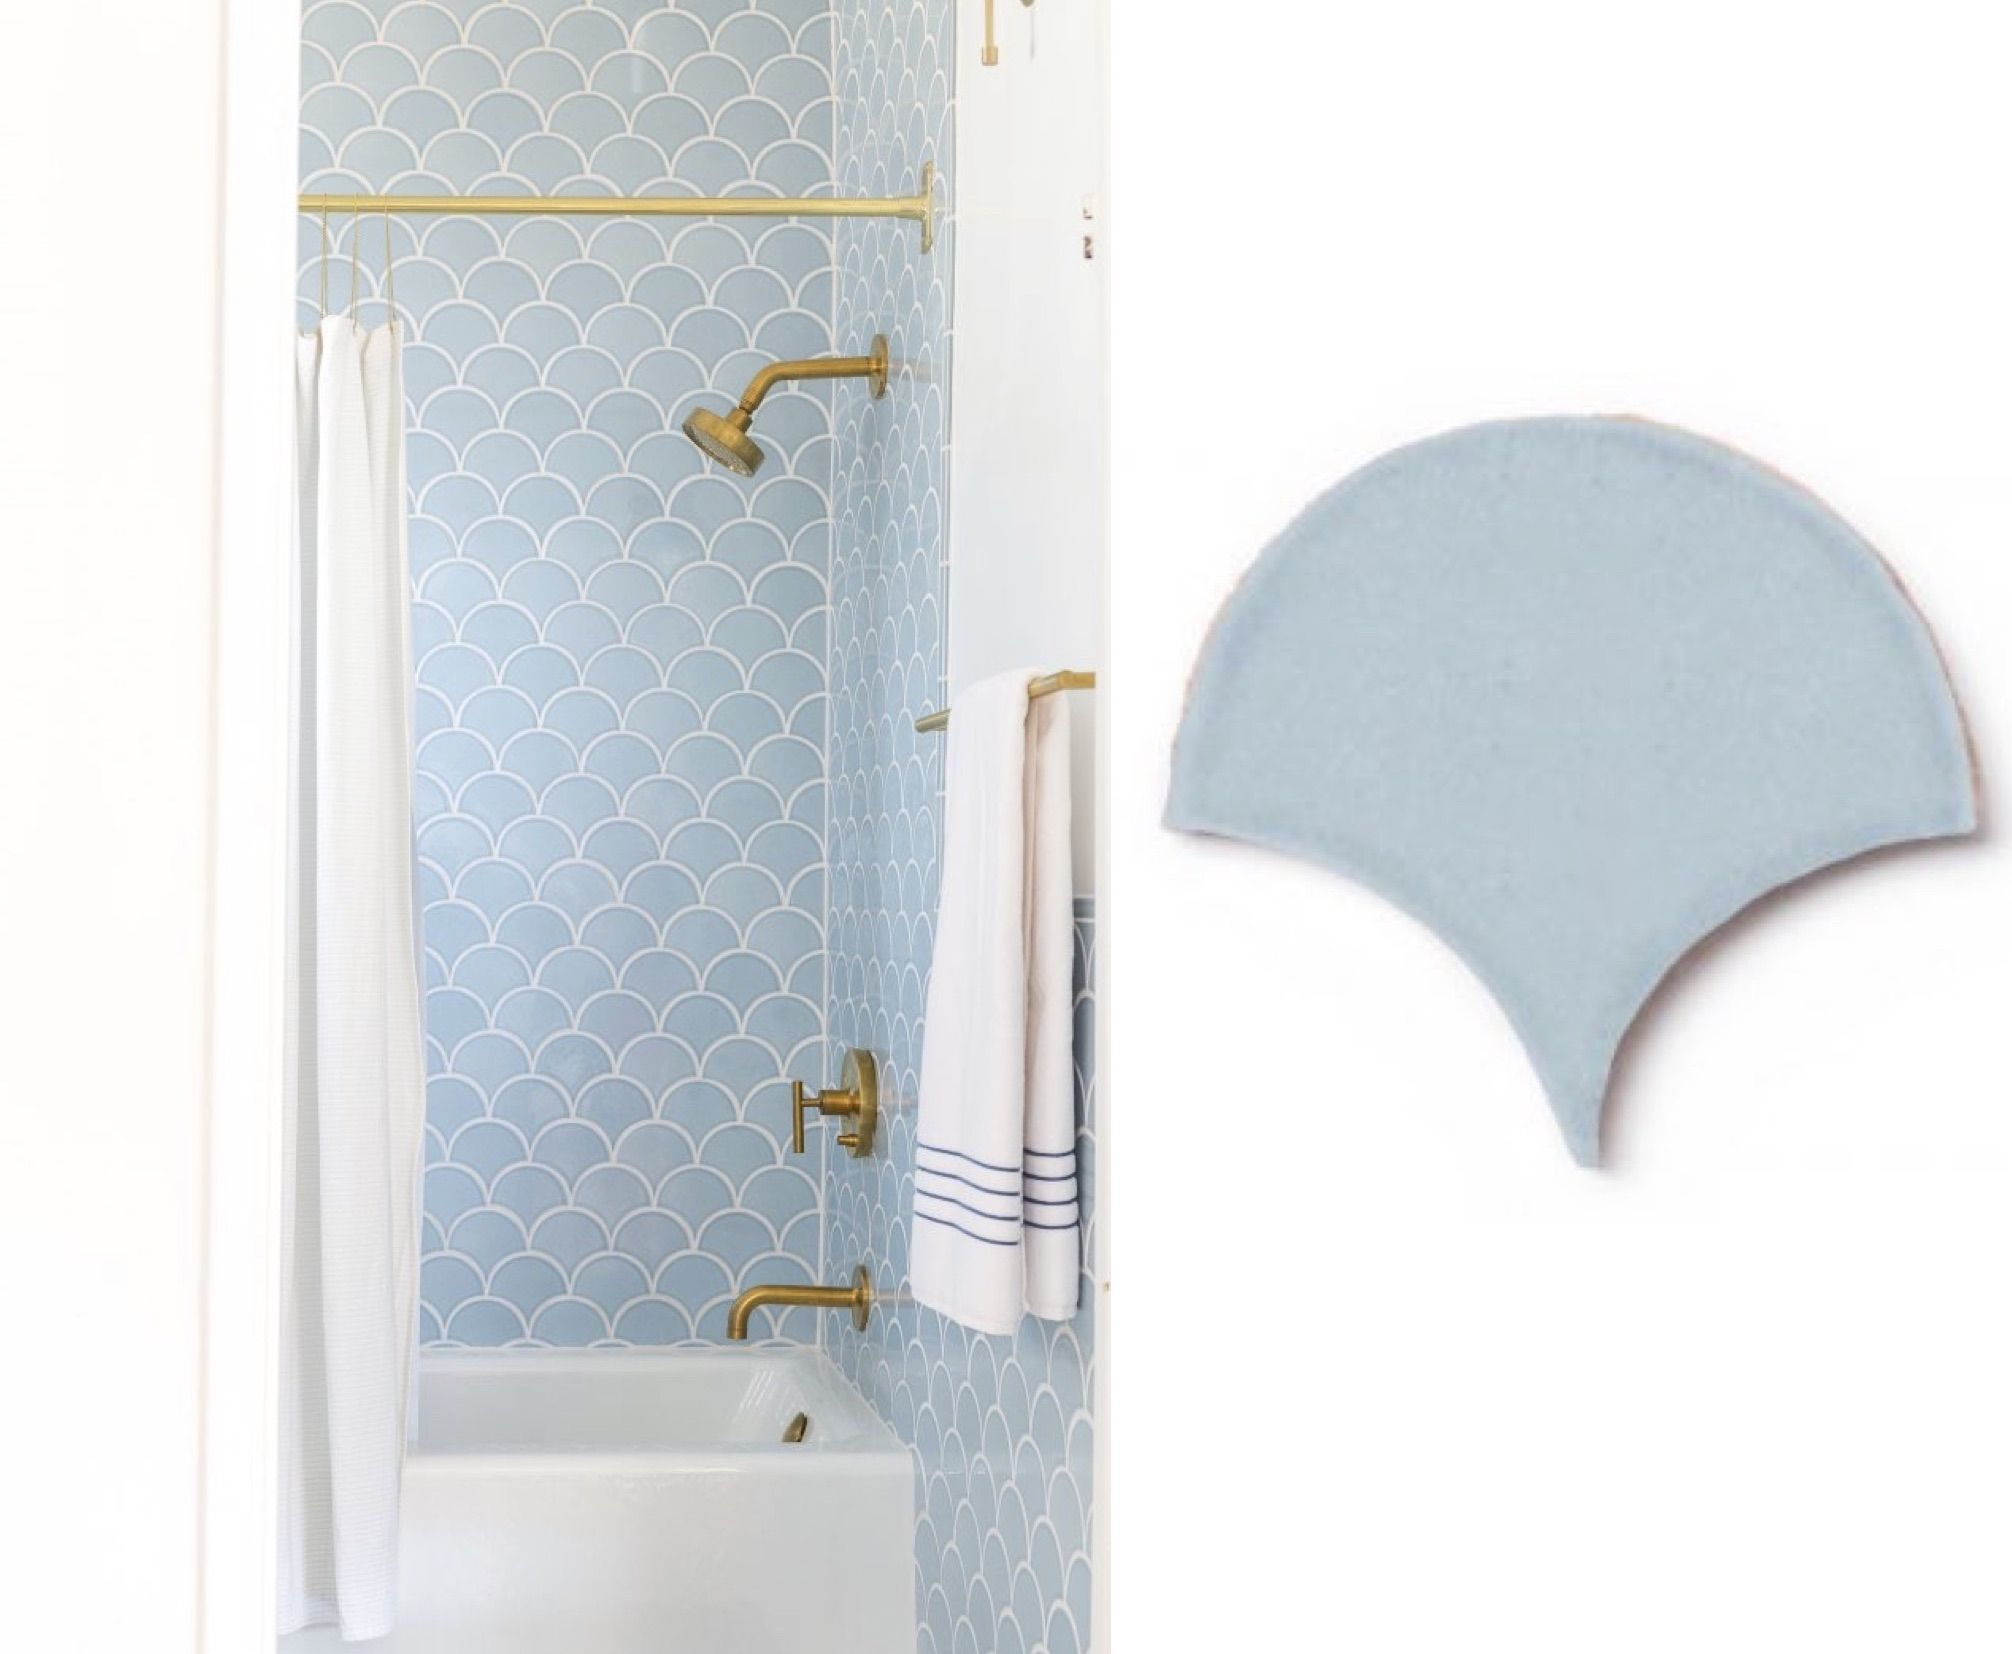 Shower Tile: Tub Surround Styles | Shower Tile: Tub Surround Styles ...